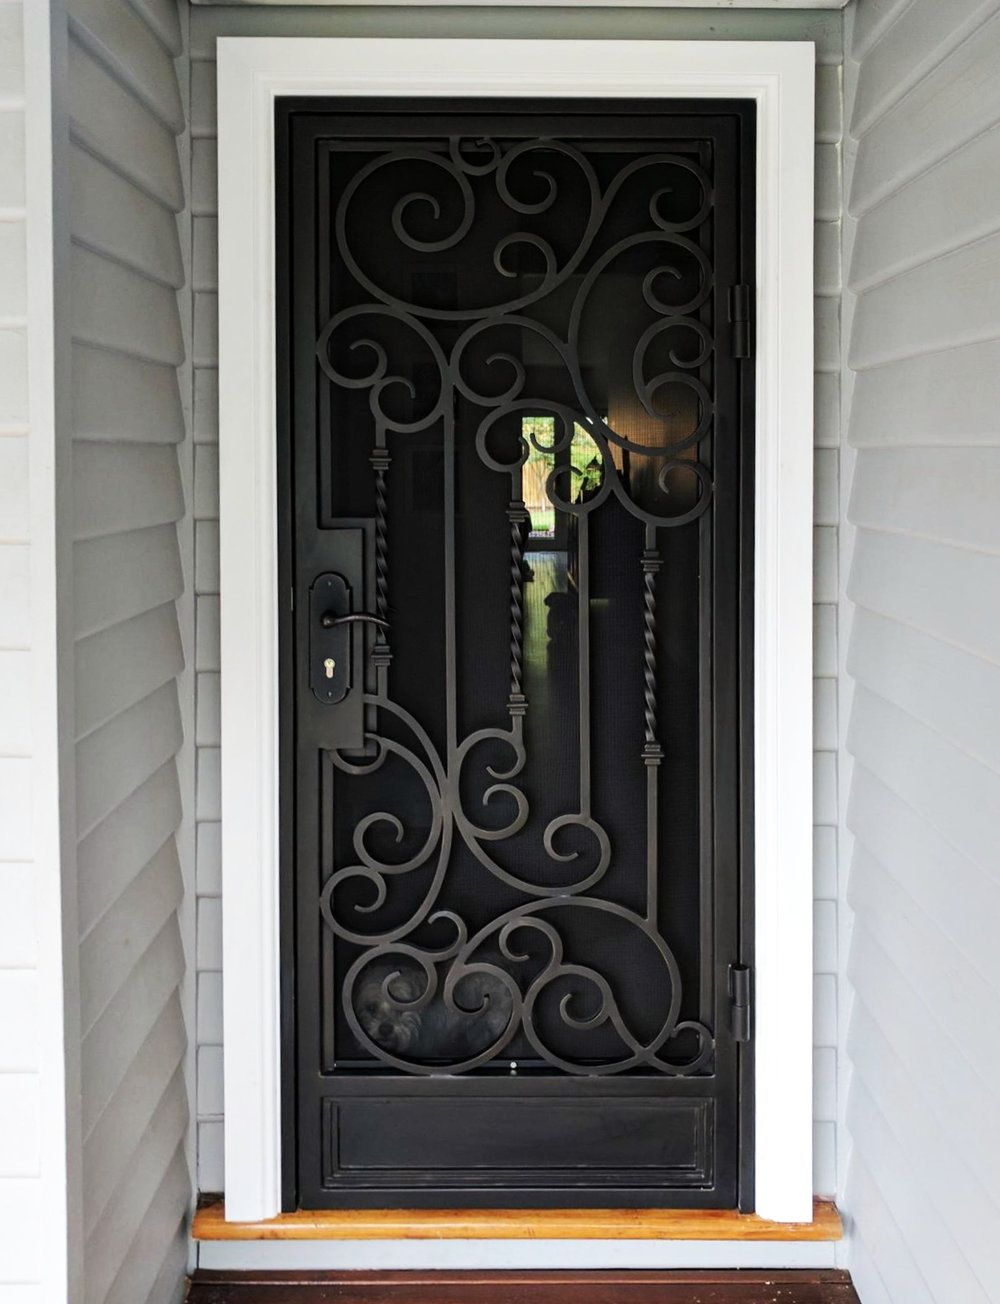 A Unique Wrought Iron Security Entry Door By Adoore Iron Designs